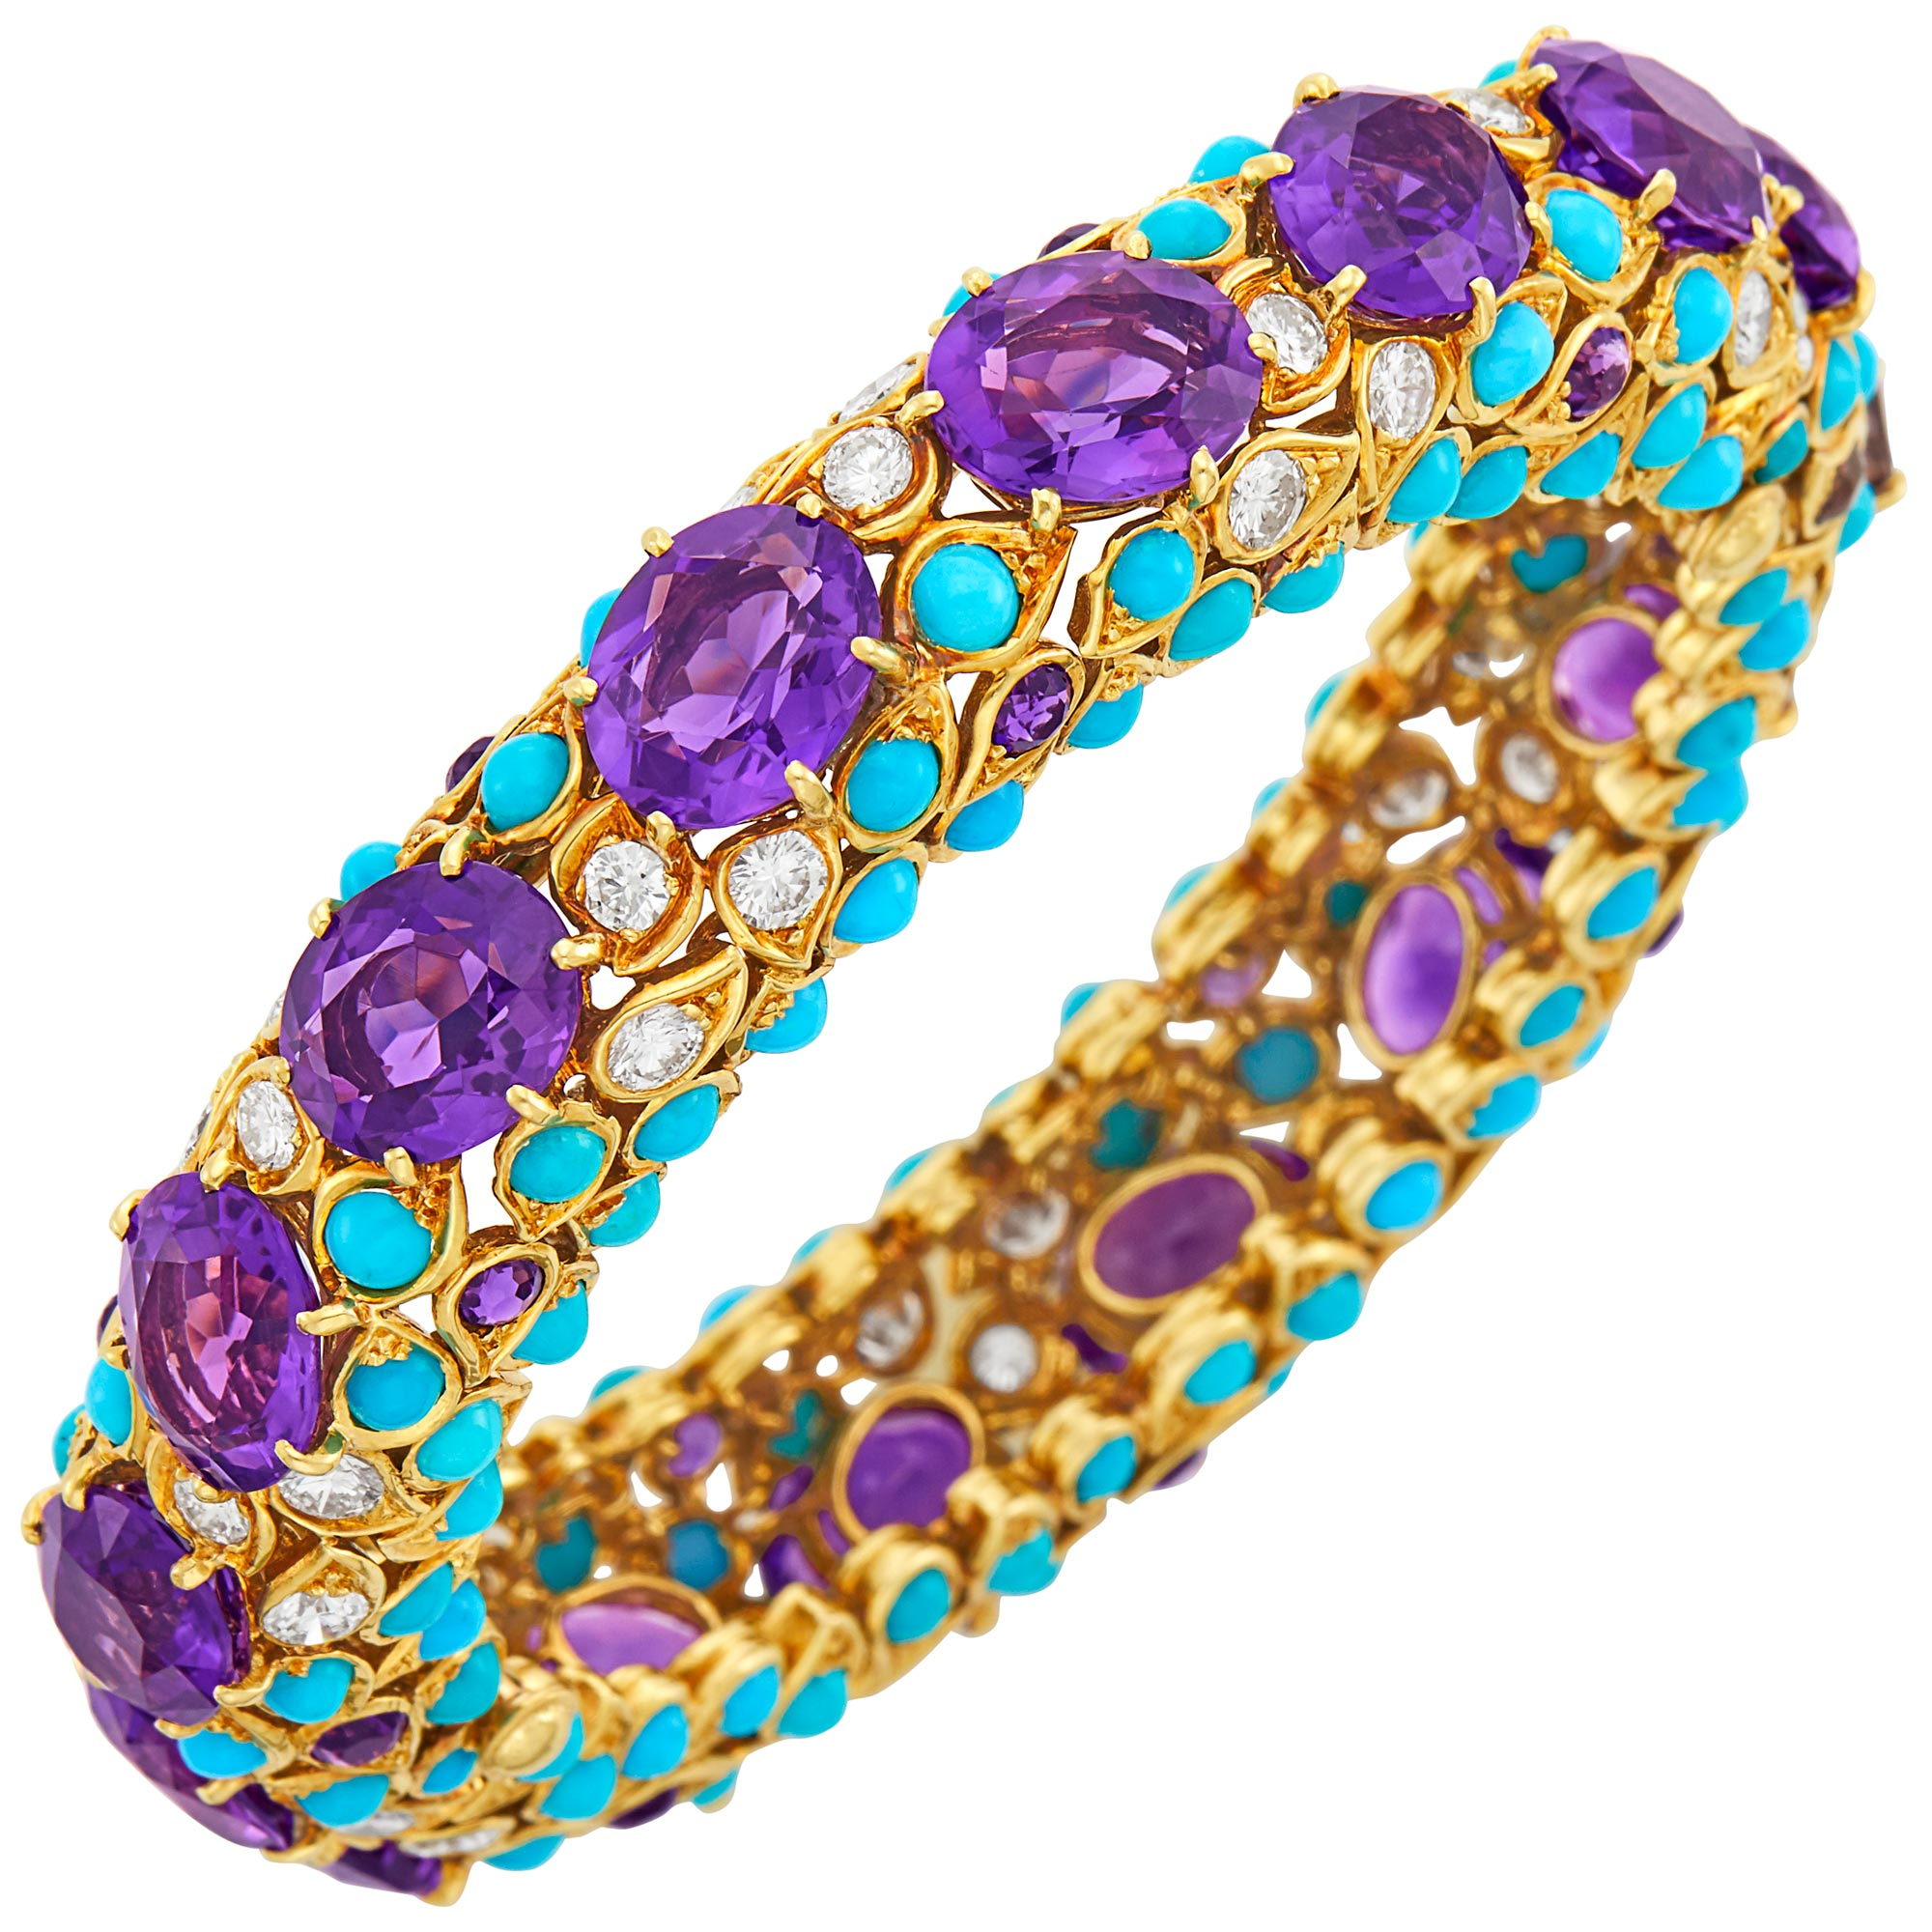 Lot image - Gold, Amethyst, Turquoise and Diamond Bangle Bracelet, Van Cleef & Arpels